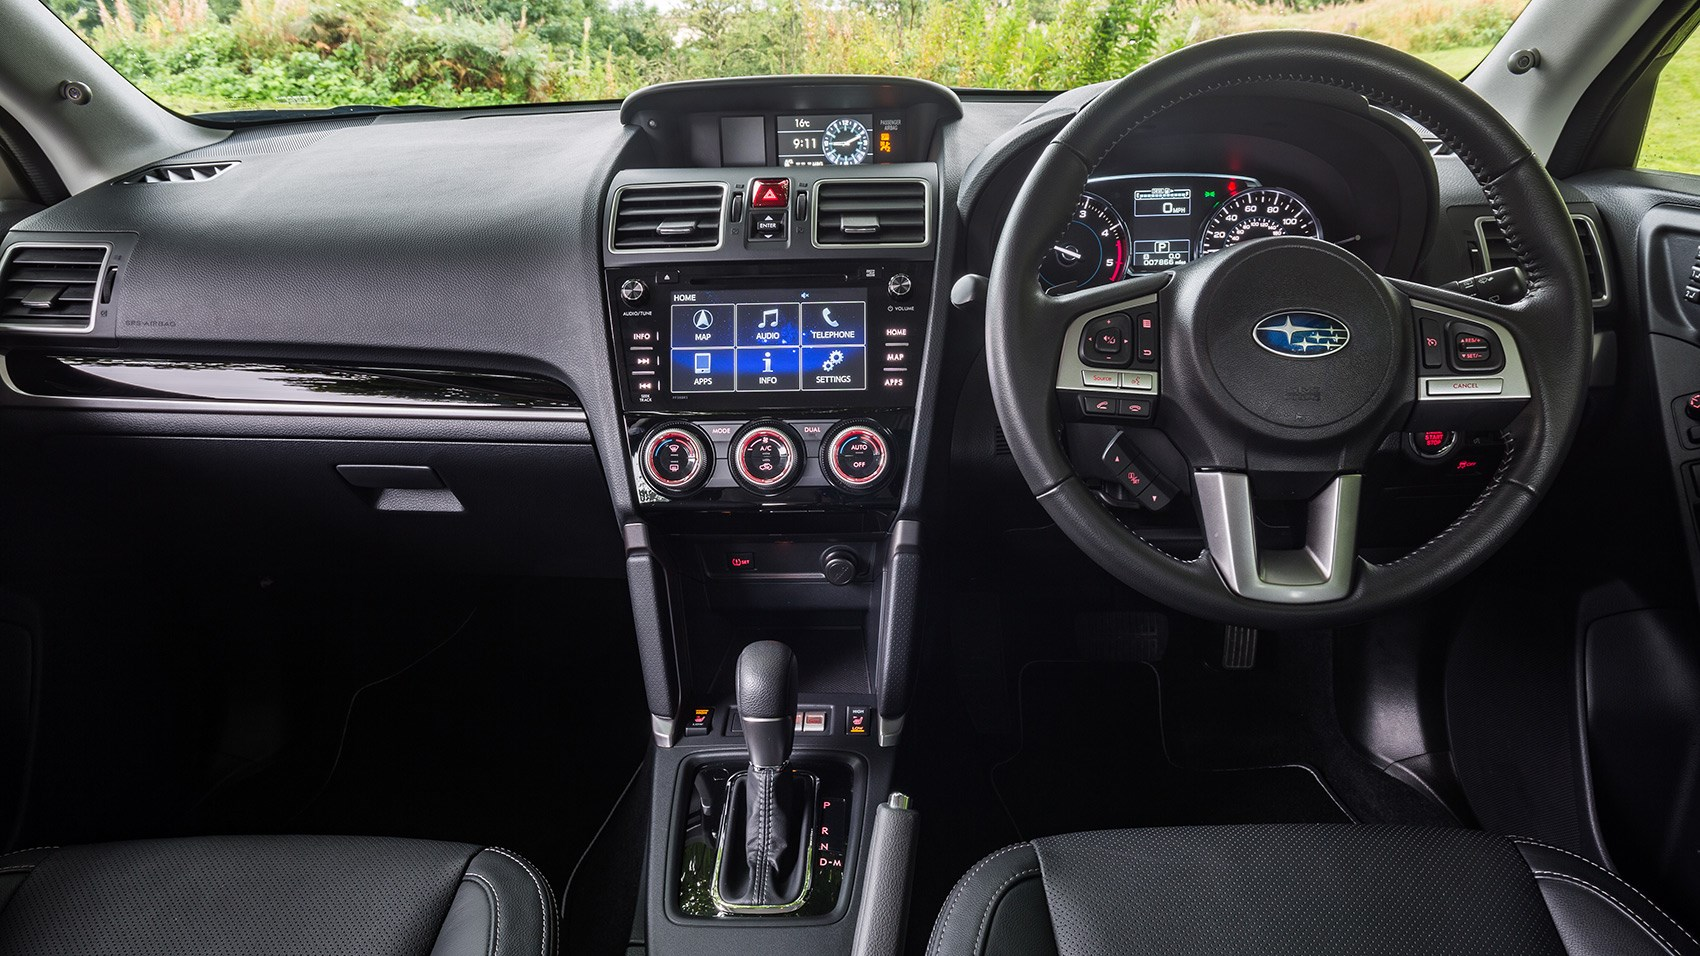 Subaru Forester 20i Xe Premium Lineartronic 2018 Review Car Boxer 4 Engine Fwd Trans Diagram The Interior Of A Shrine To Cheap Plastic But Its Tough As Old Boots